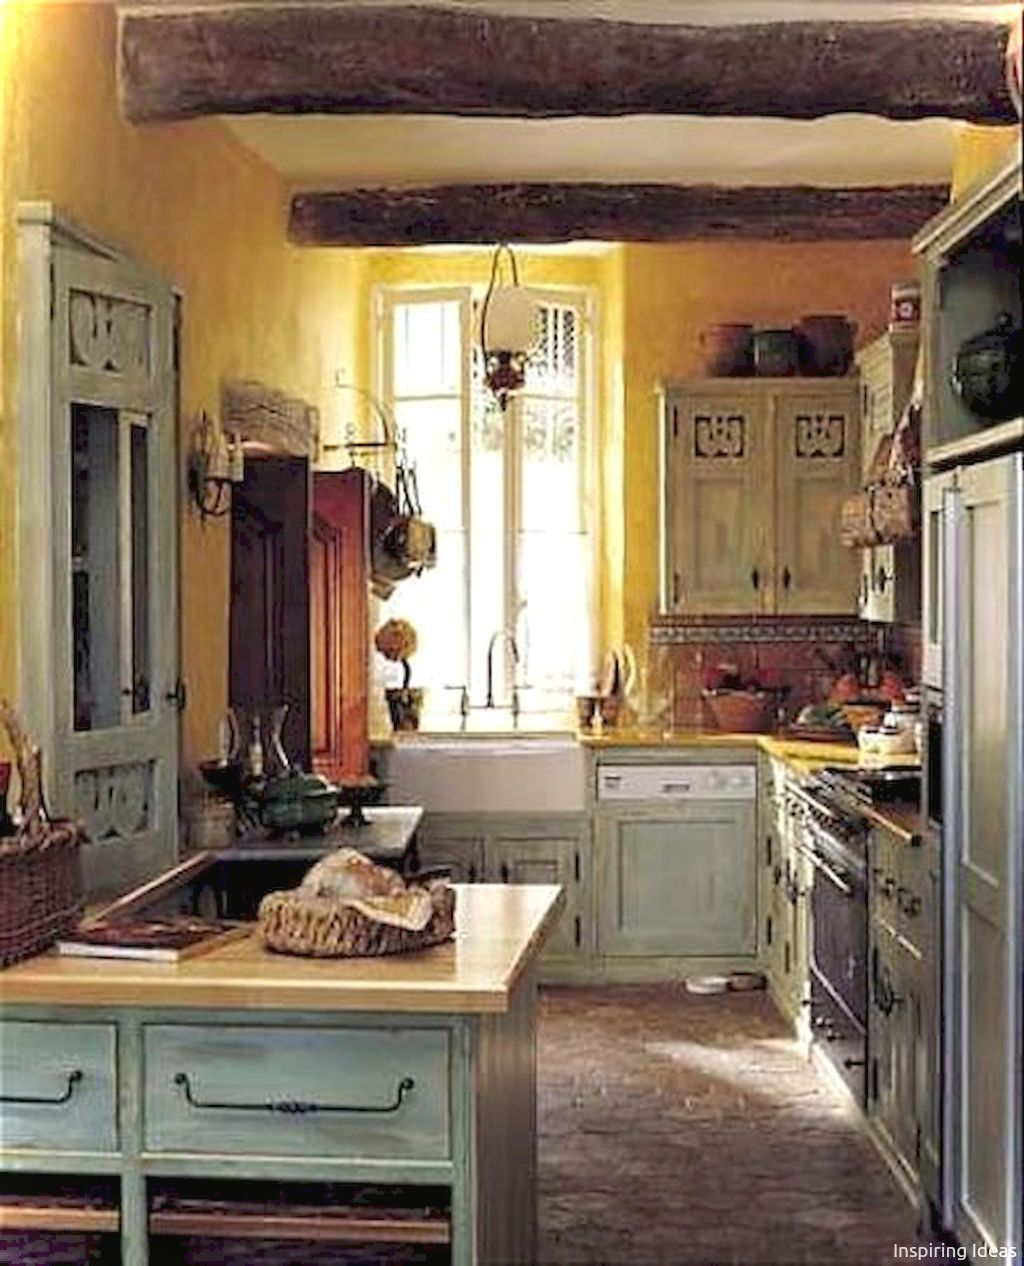 Kitchen Cabinets French Country Style: Small Kitchen French Country Style Ideas39 In 2019